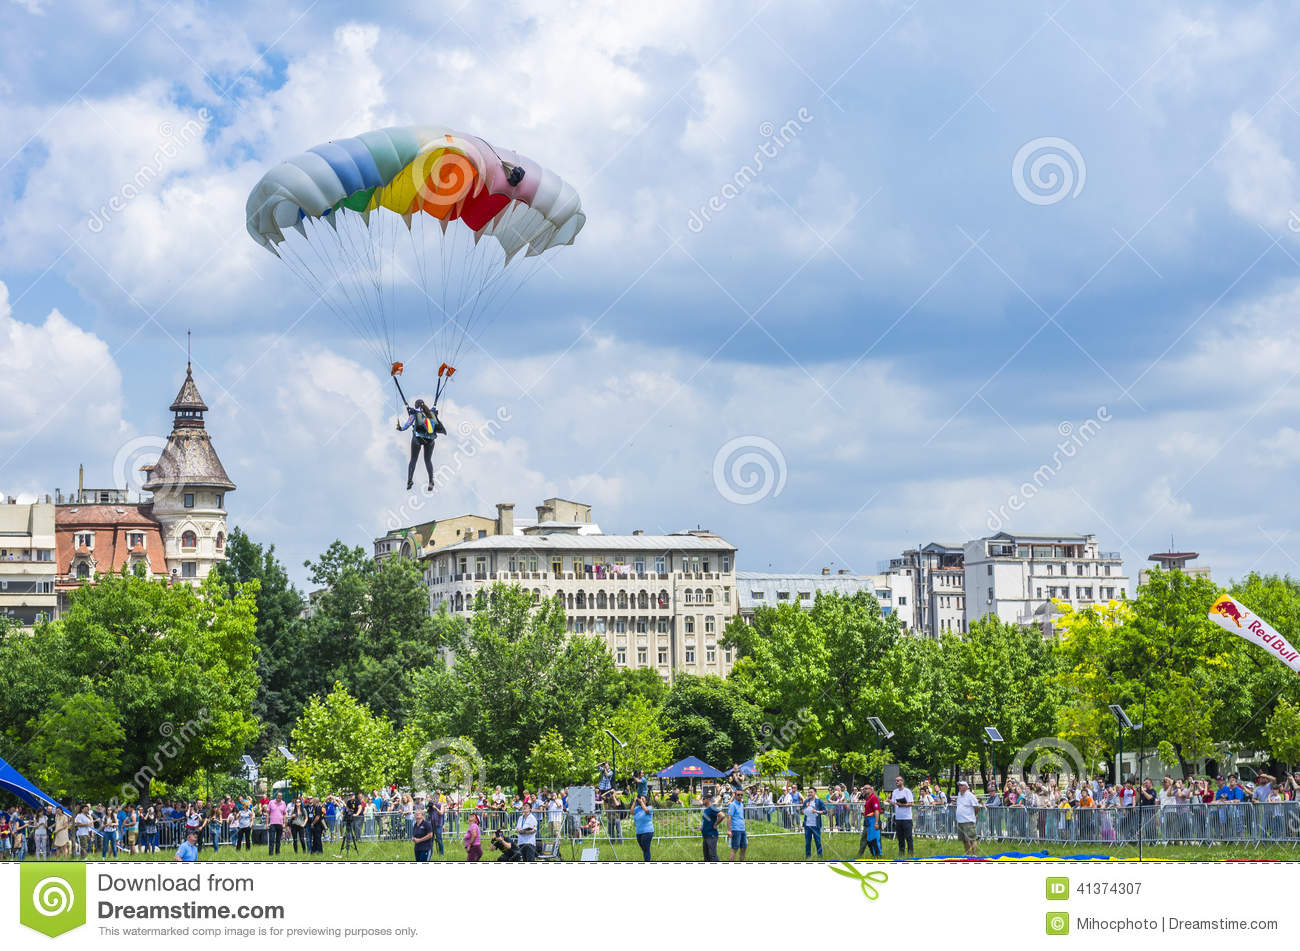 Parachutist In The Air Editorial Photography - Image: 41374307